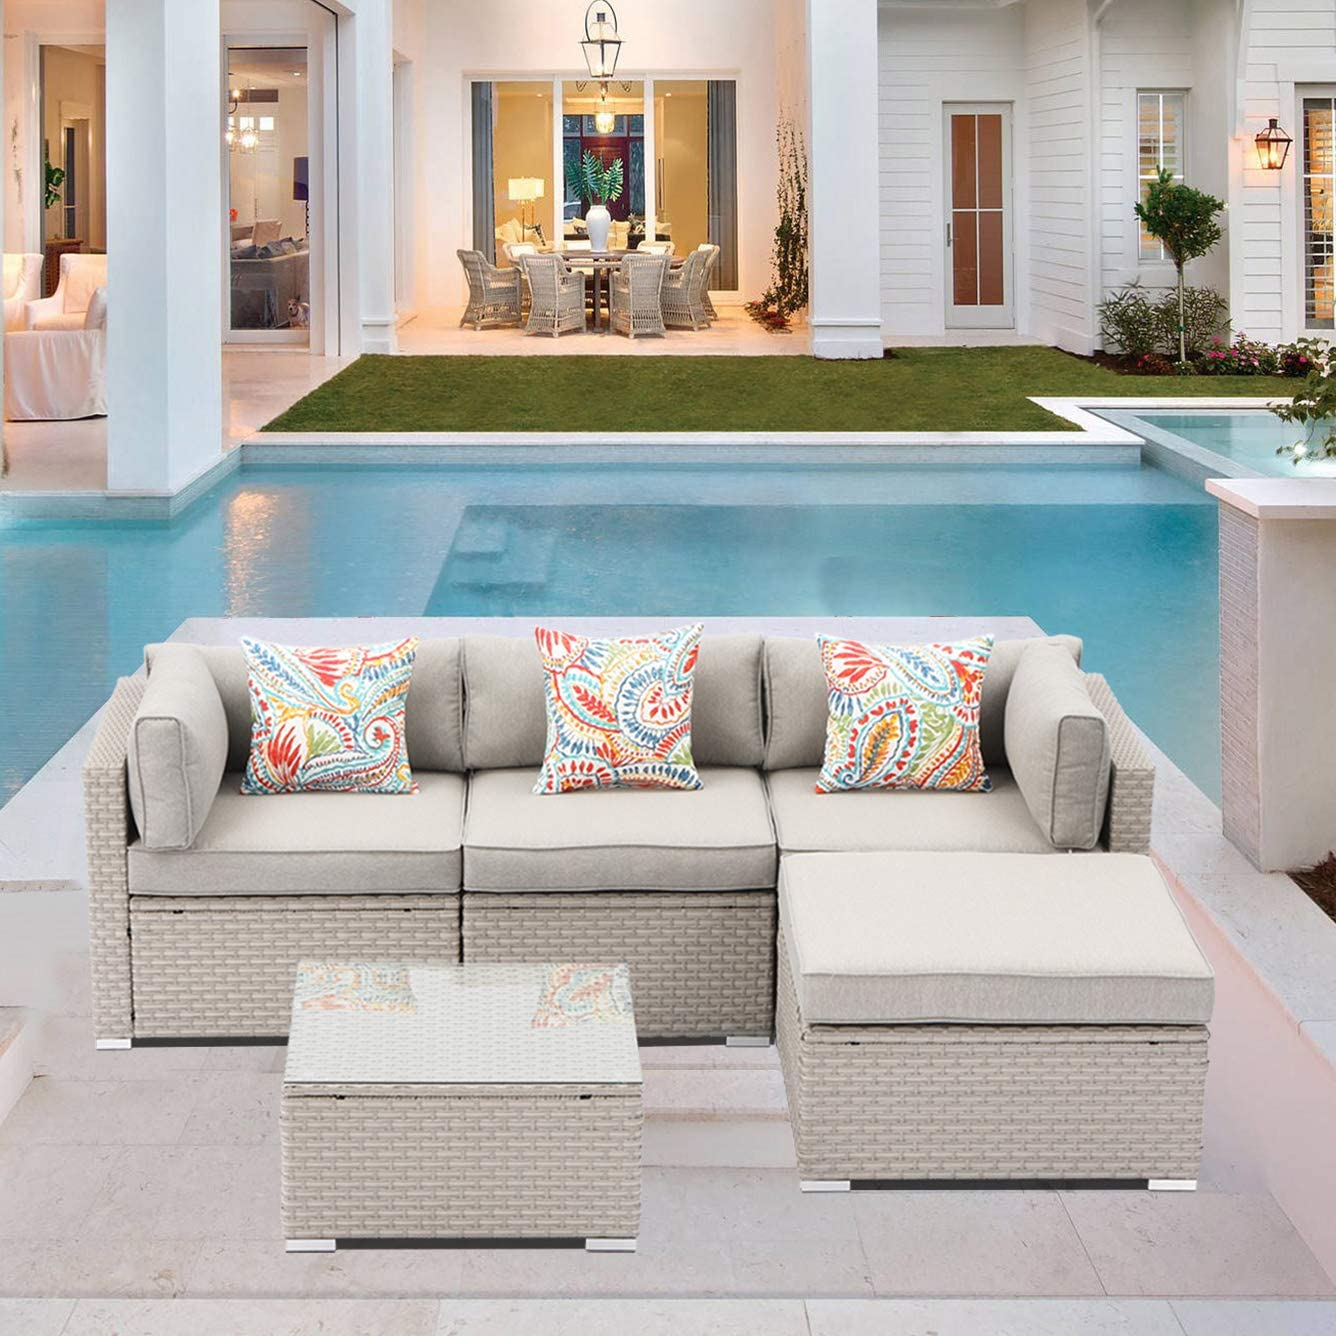 SUNBURY 5-Piece Ranking TOP18 Outdoor Sectional Wicker Sofa in Pearl Gray Max 87% OFF 3 w